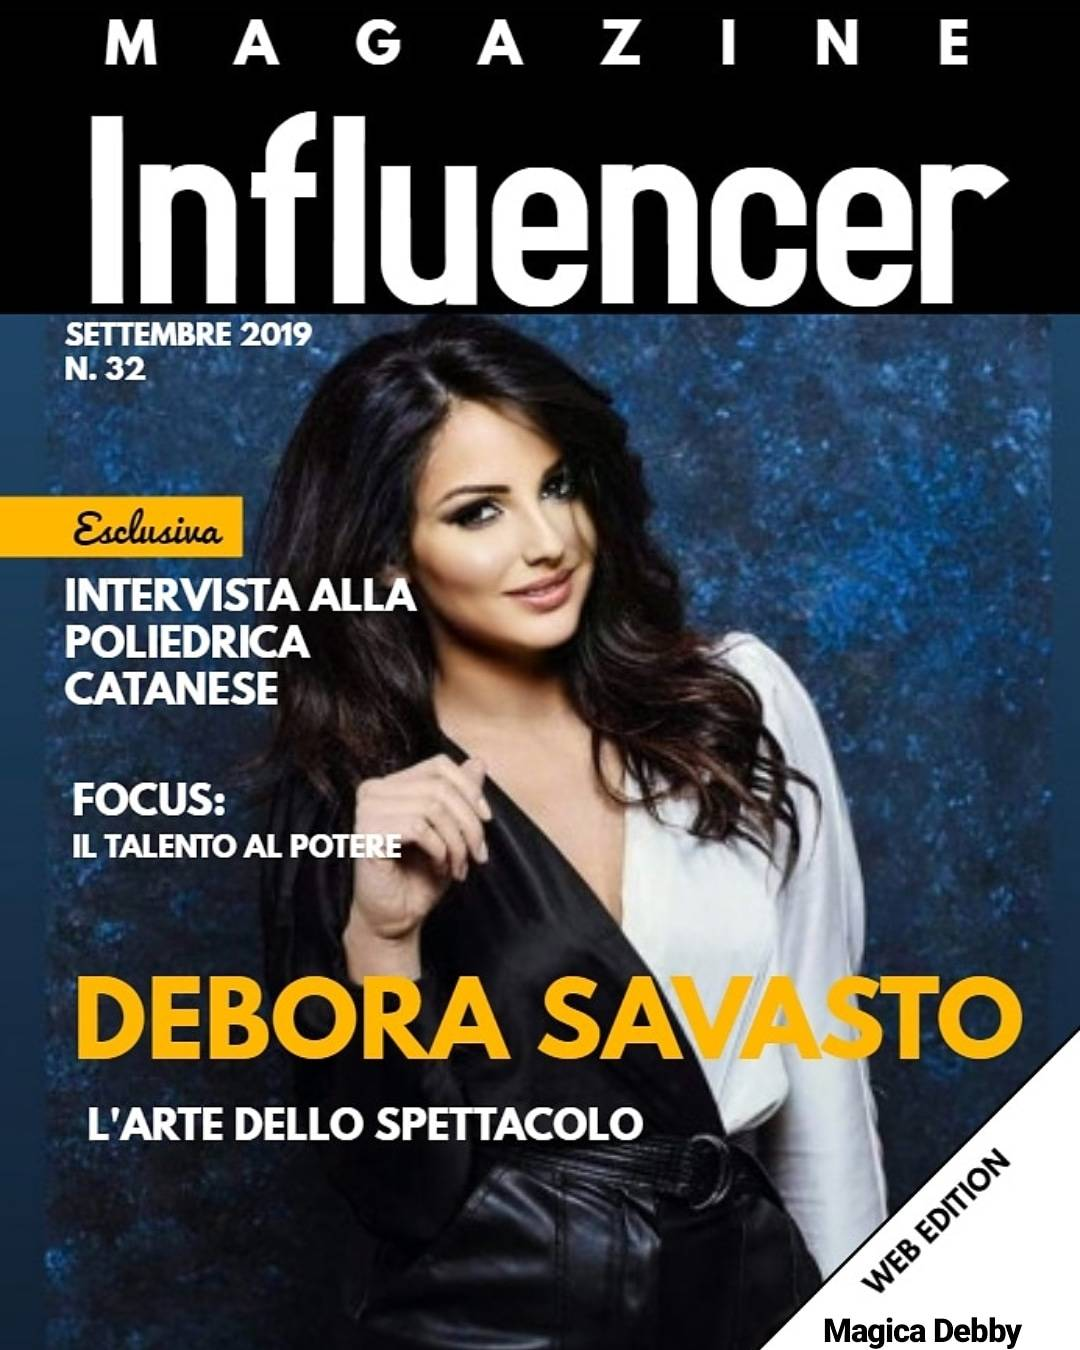 Intervista su gli influencer